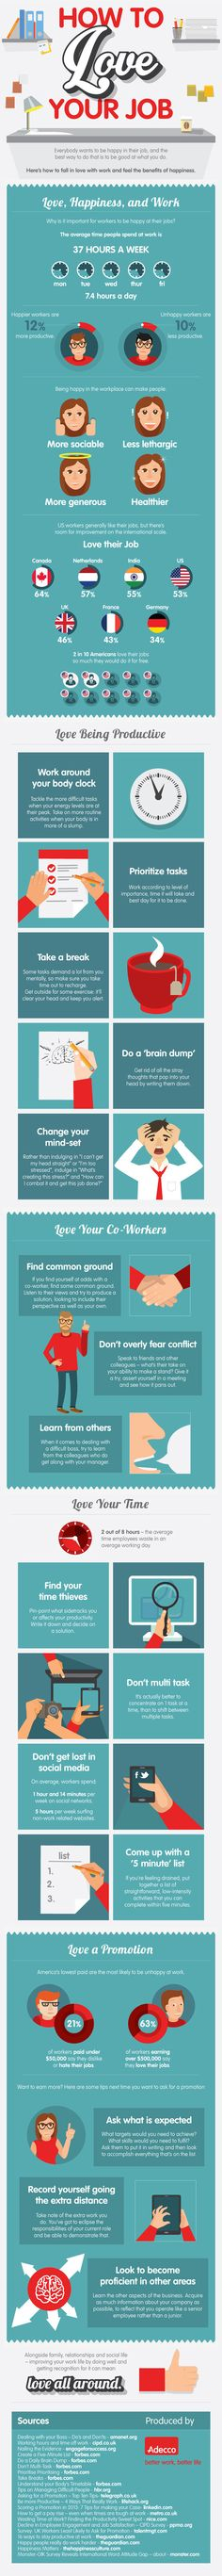 How to Love Your Job (infographic) by deliveringhappiness #Infographic #Happiness